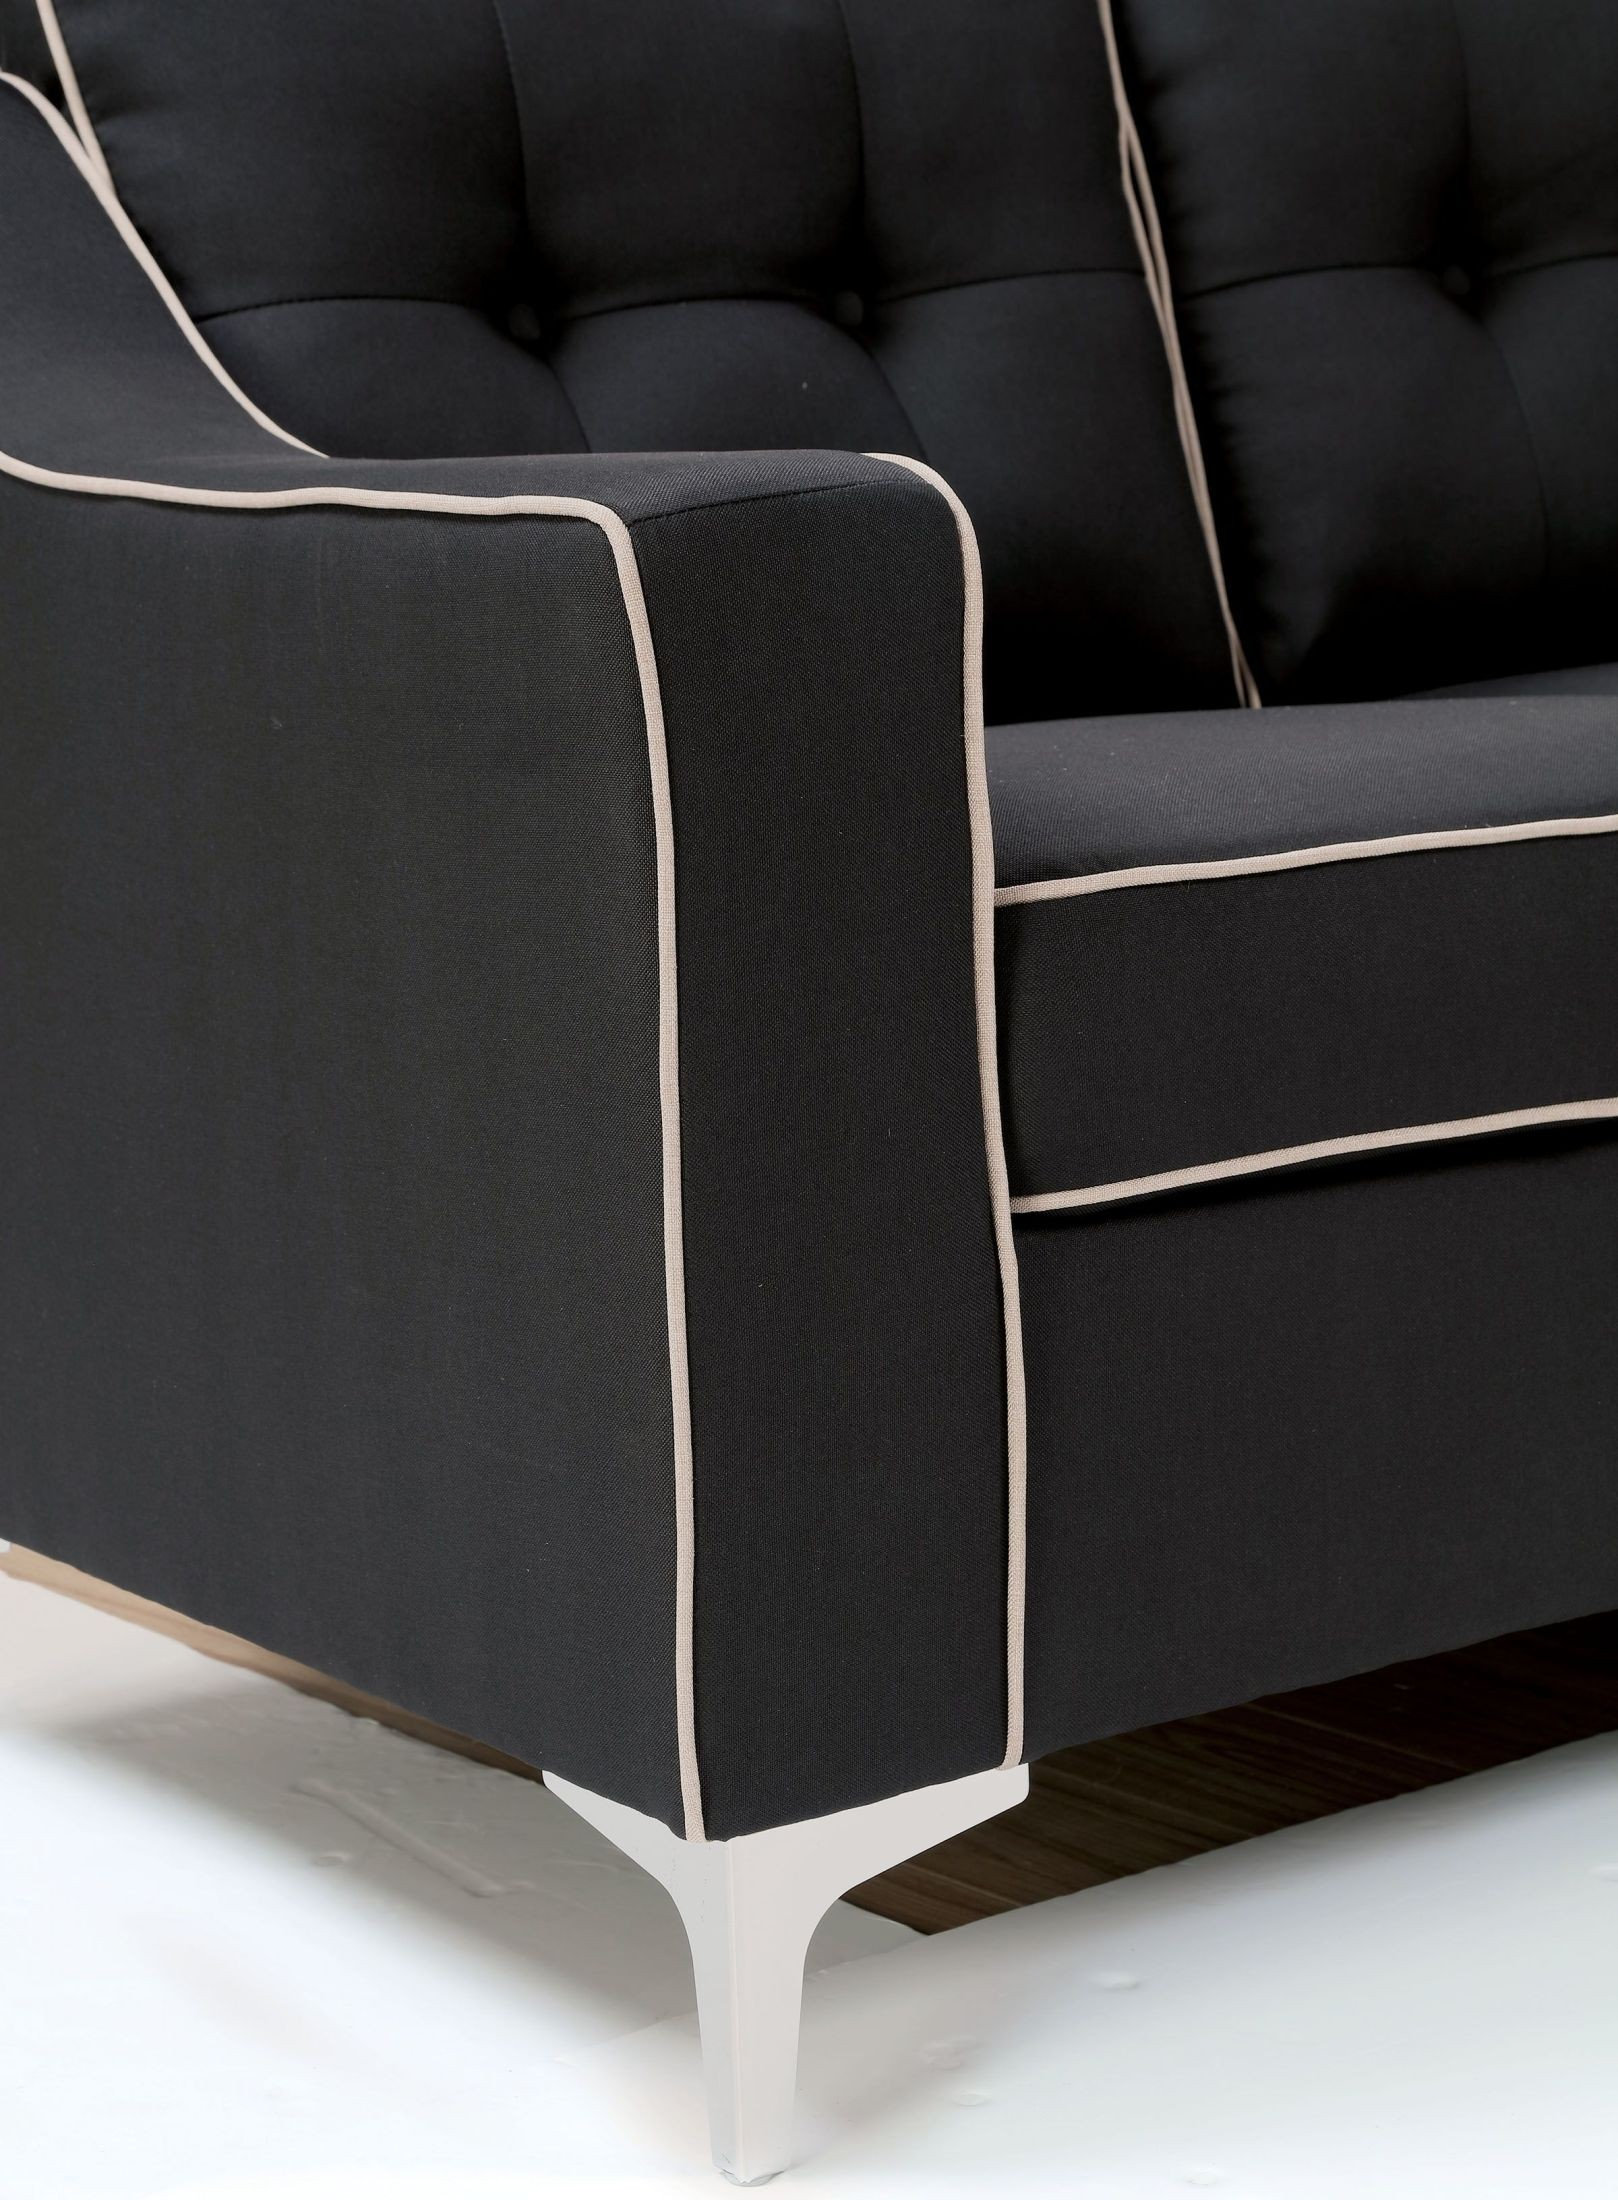 GLENDA SOFA & LOVESEAT | montecarlofurniture